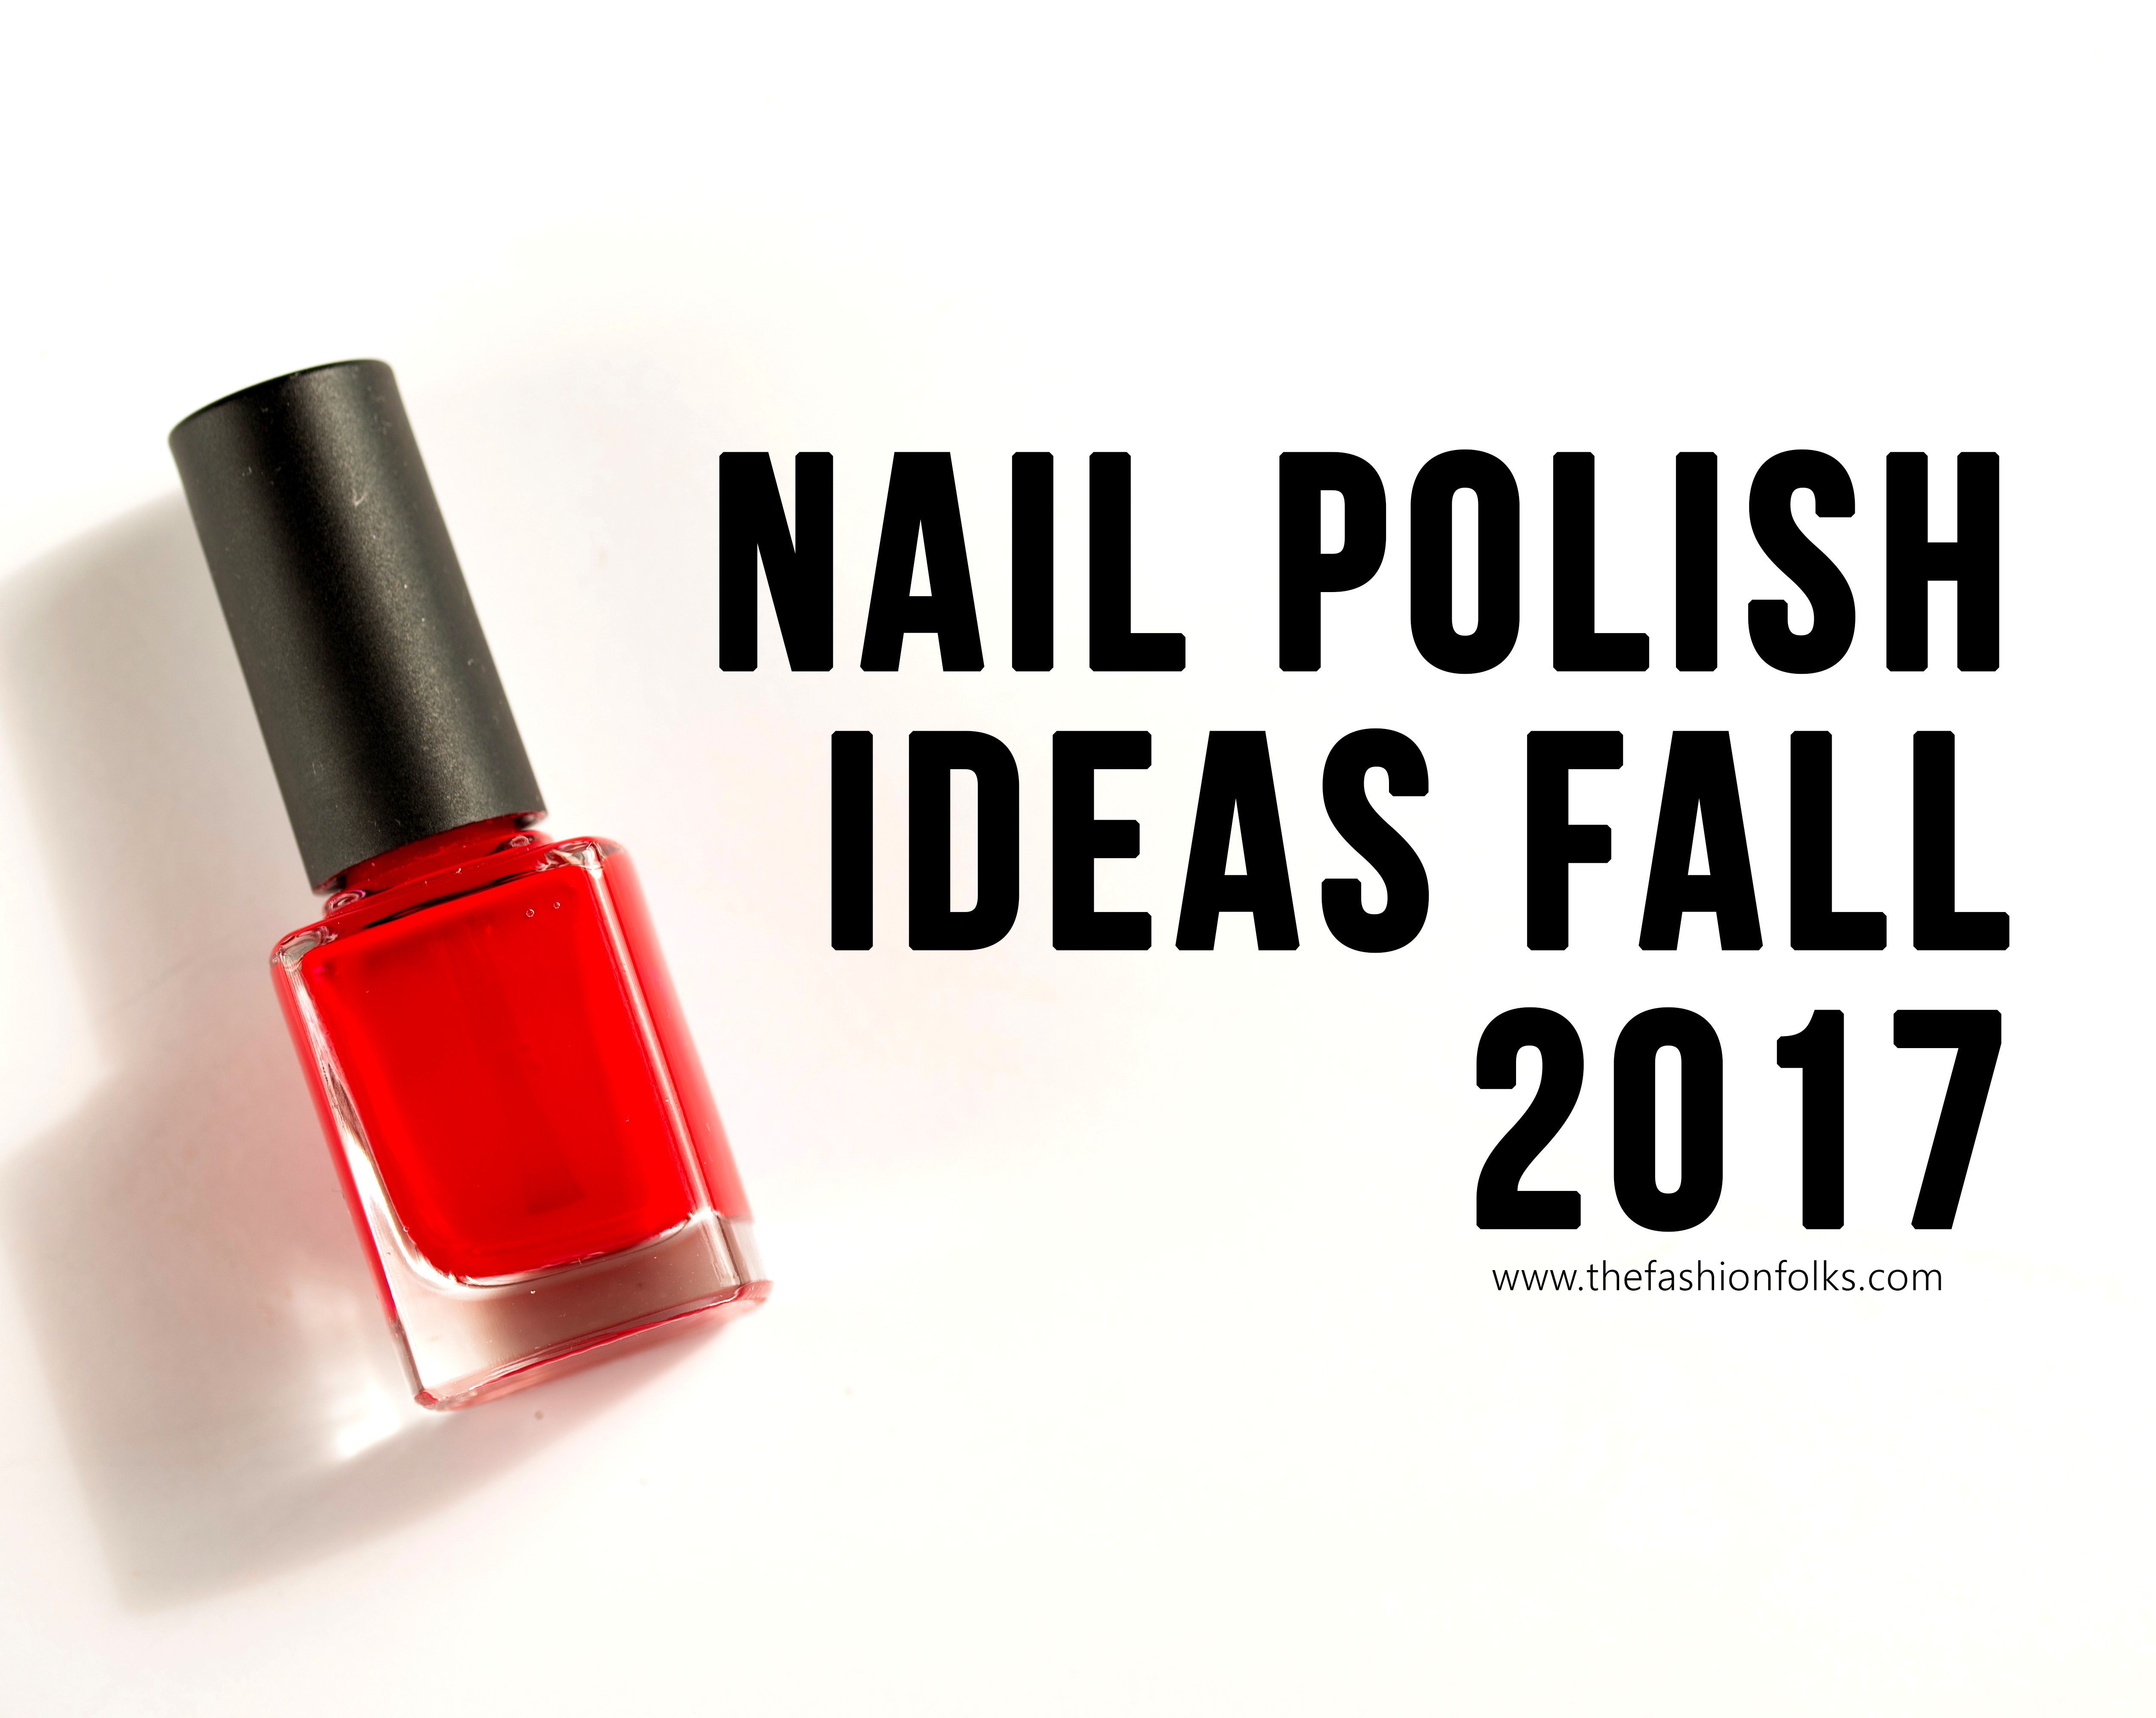 Nail Polish Ideas Fall 2017